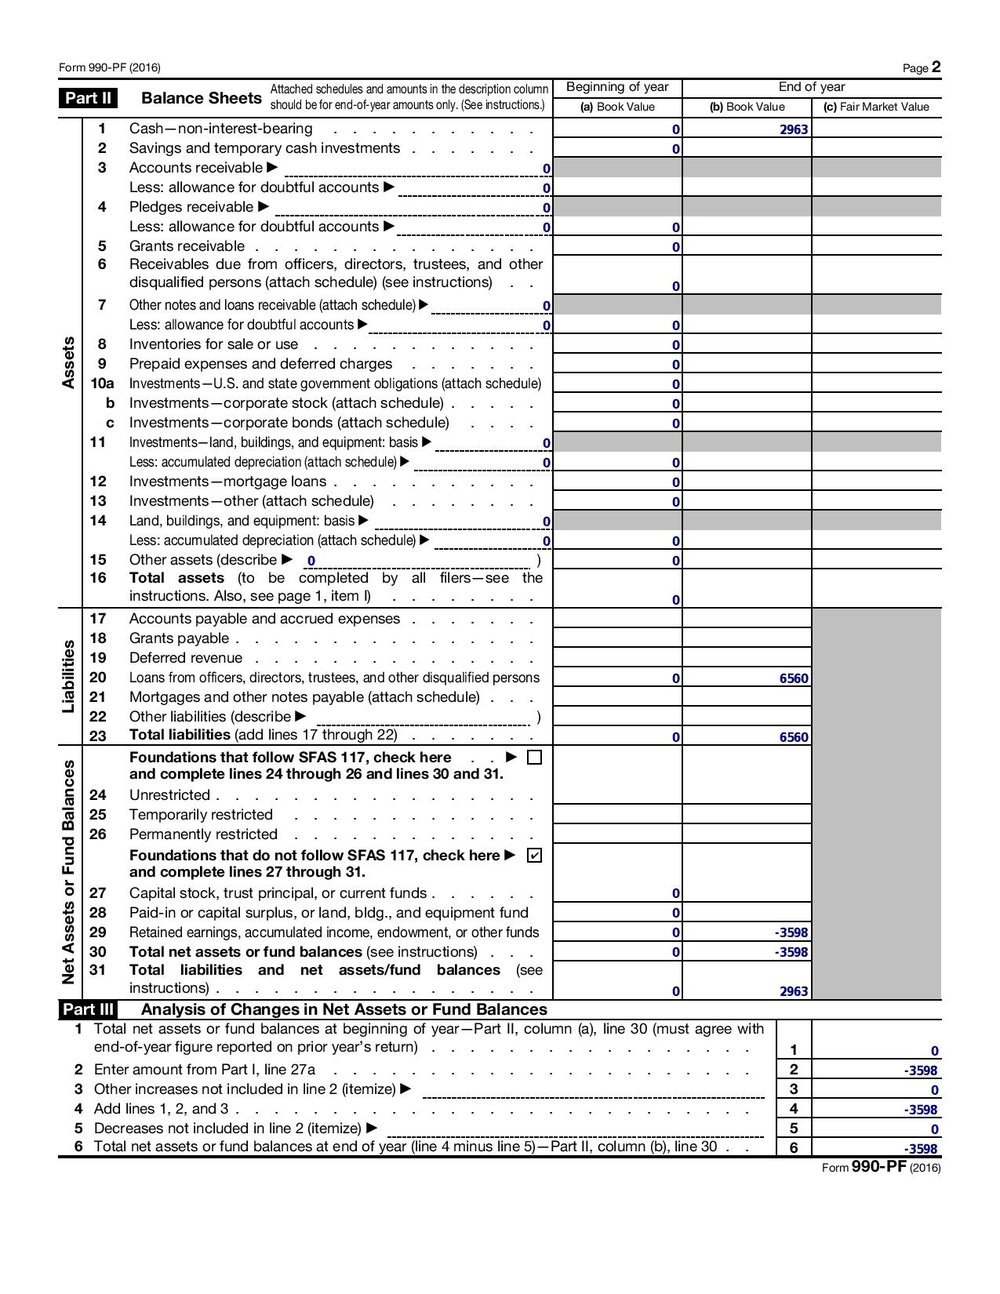 Form990_PF_TY_2016-page-002.jpg